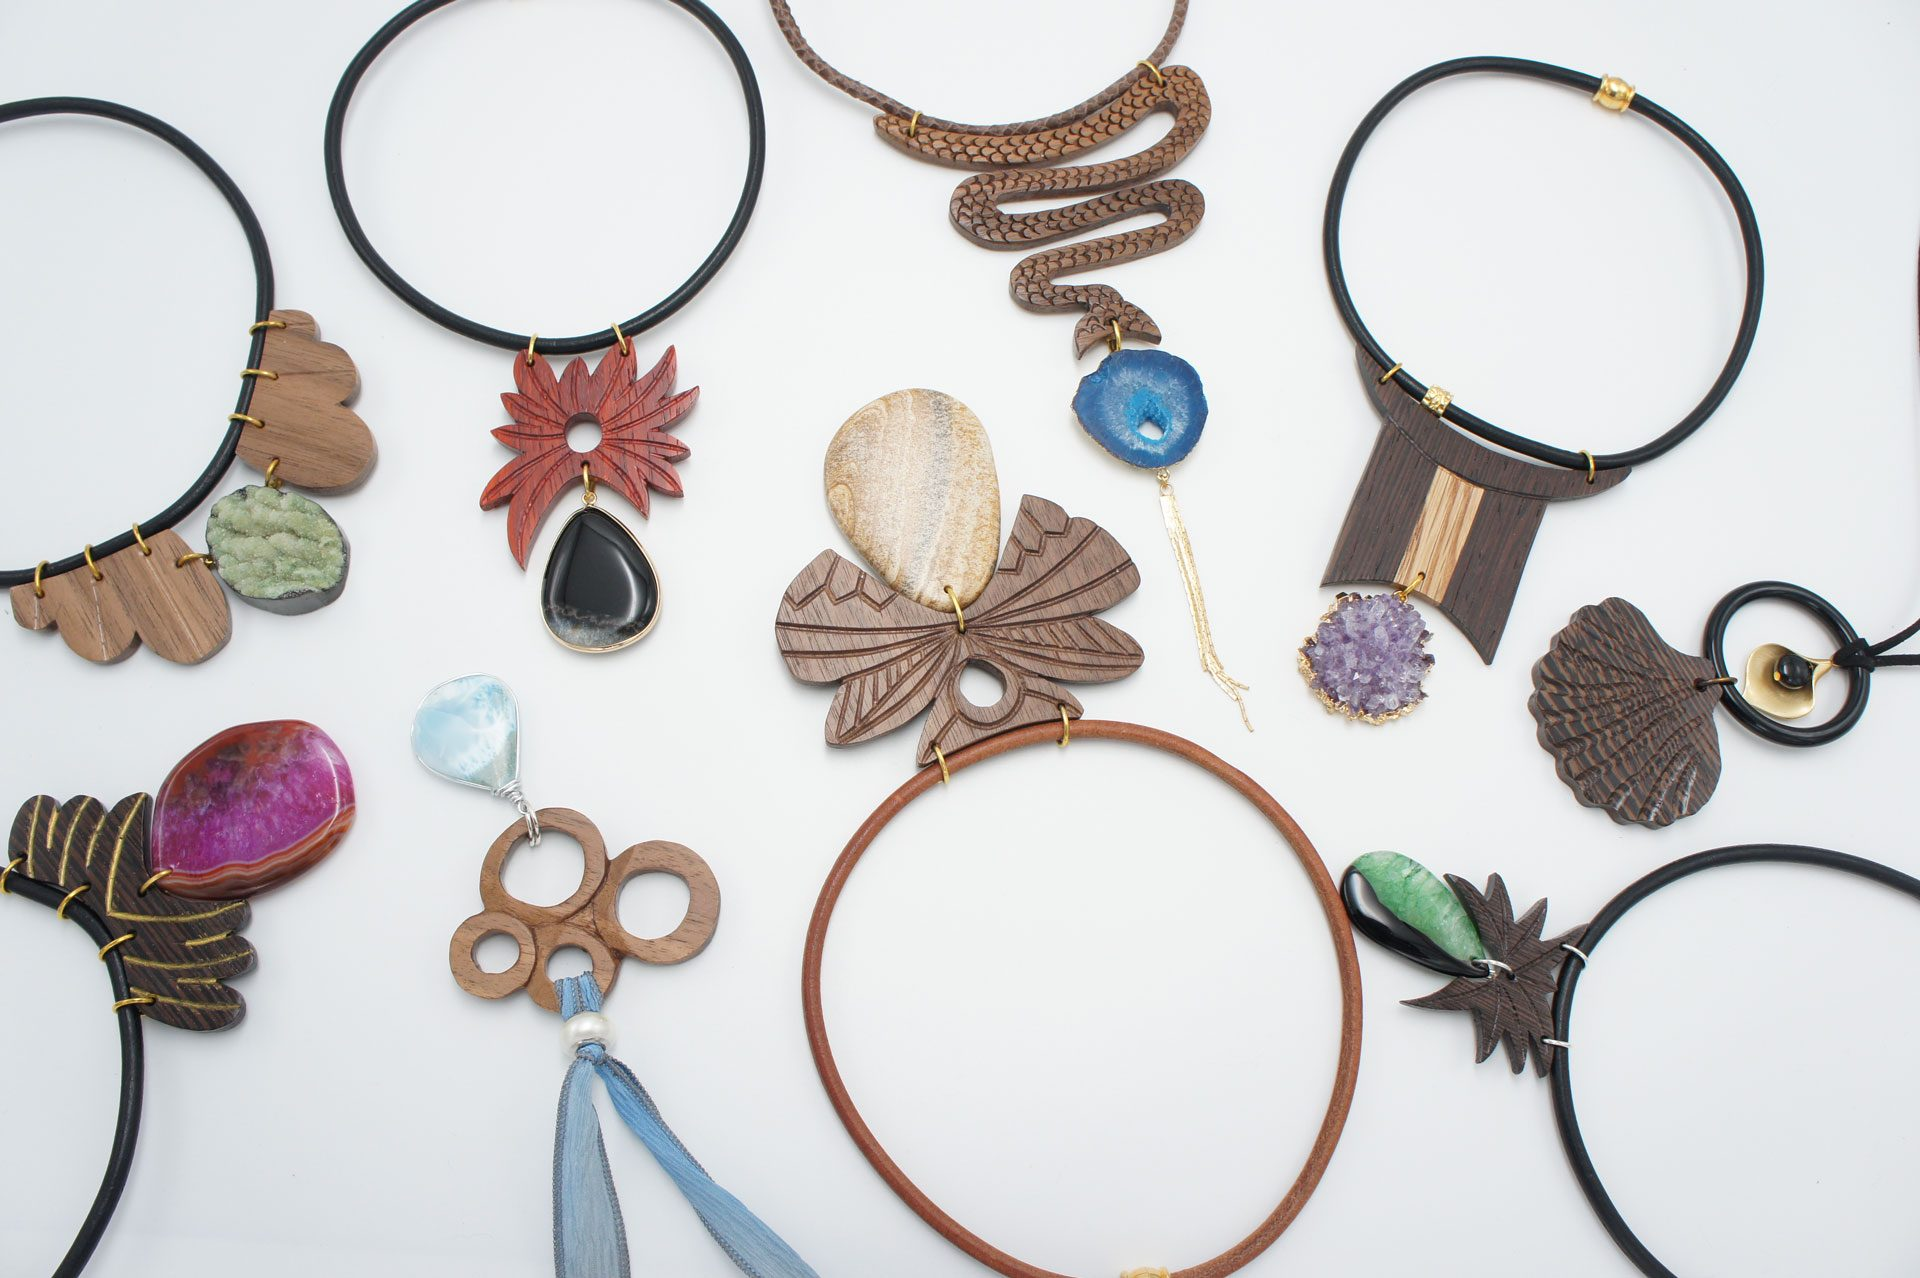 necklaces, chokers